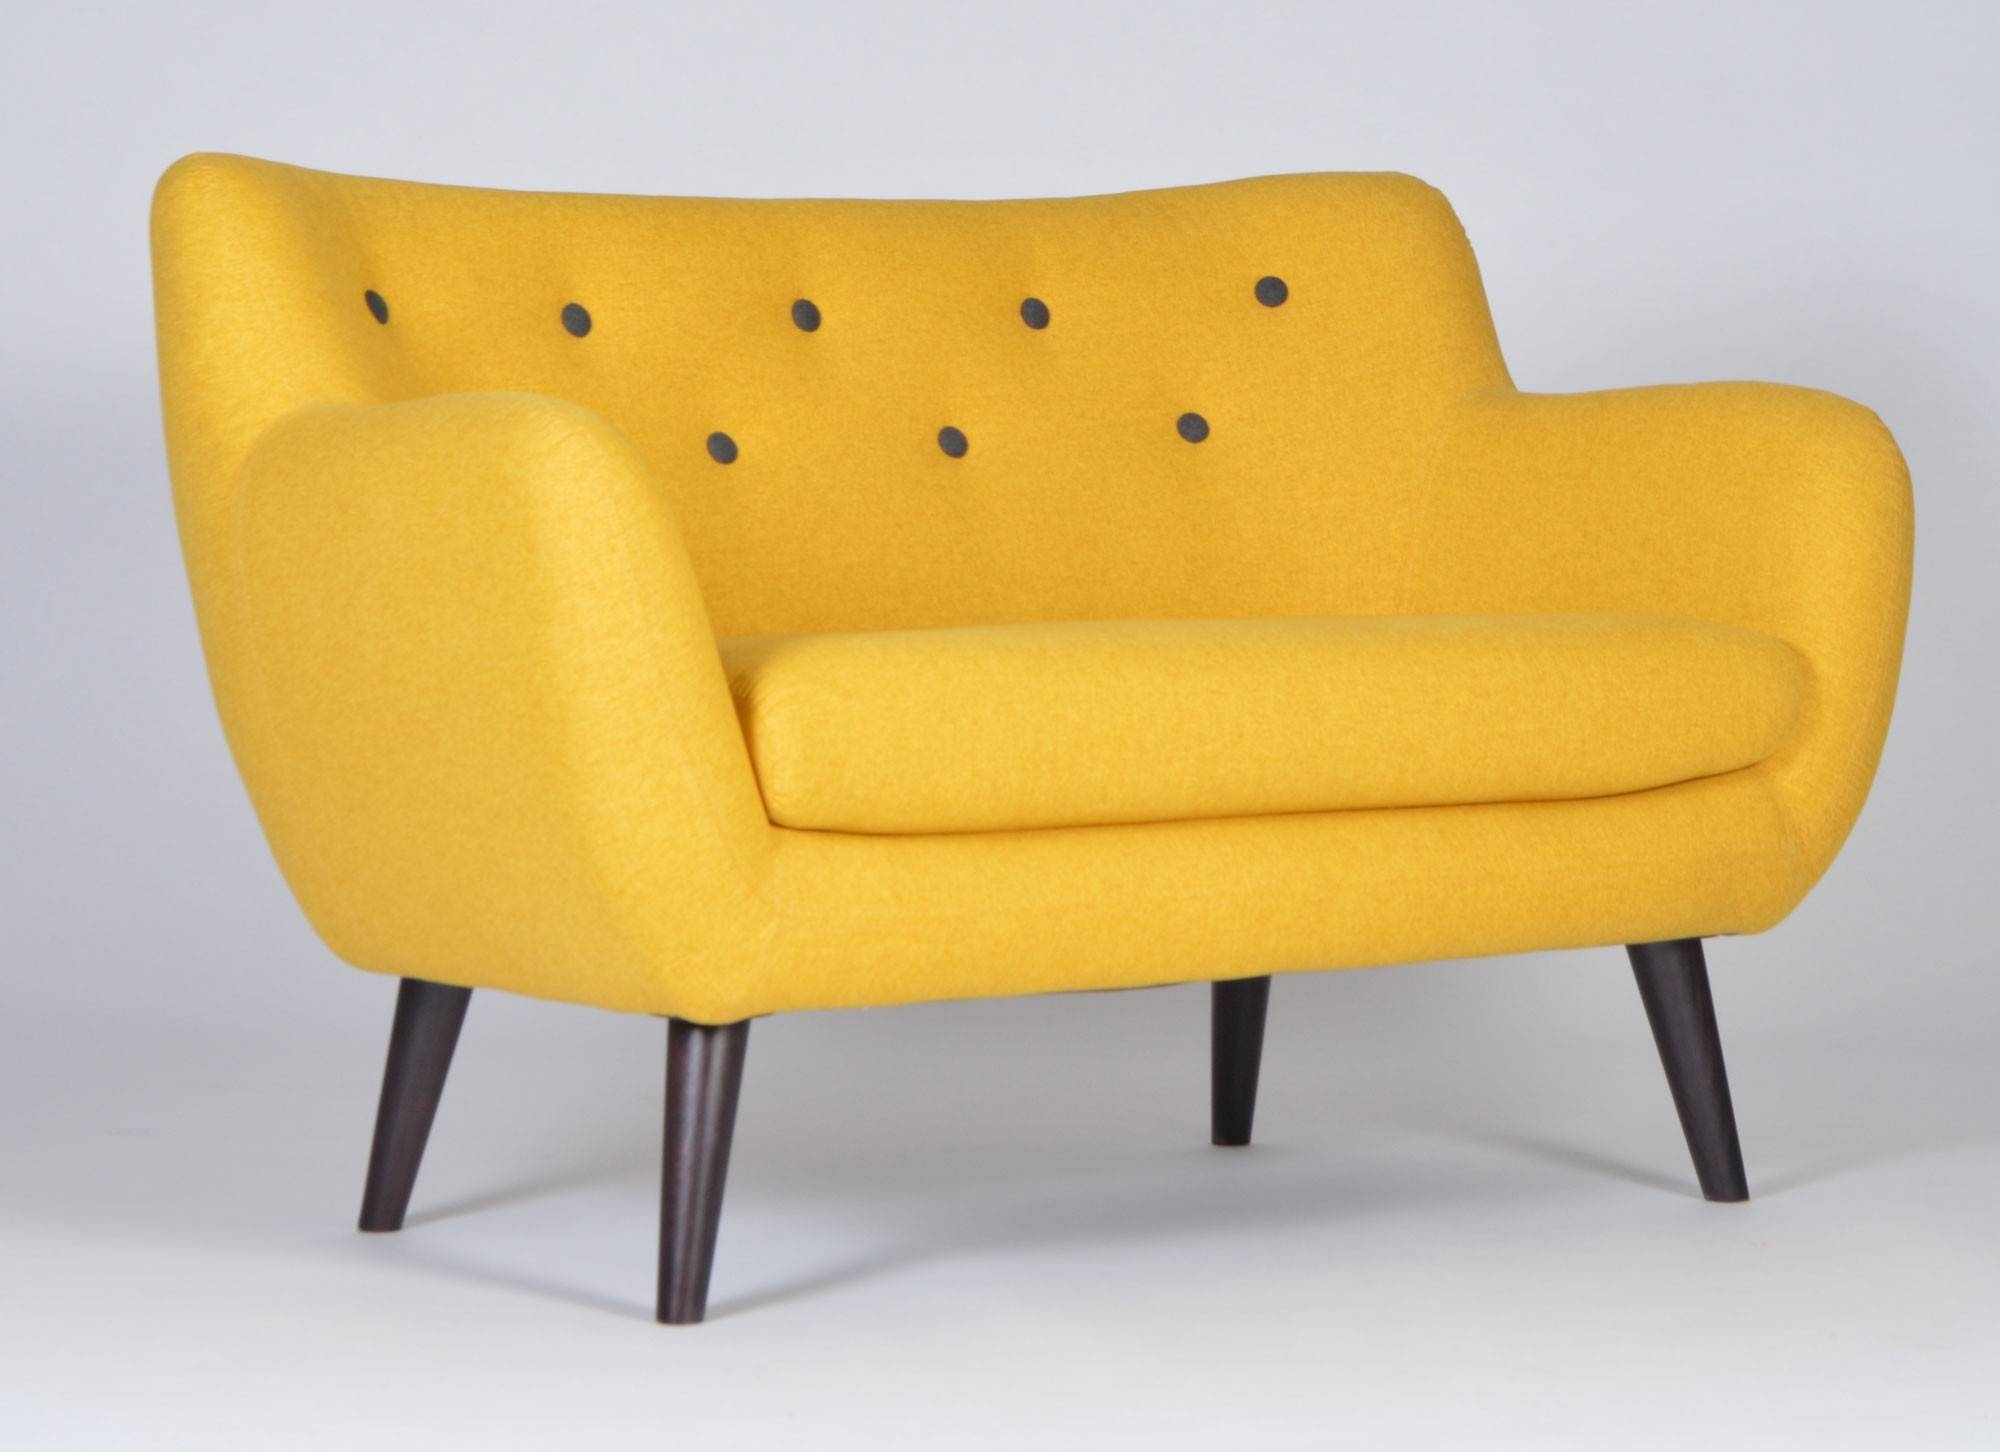 Sofas – Sofas & Chairs | Tr Hayes – Furniture Store, Bath For Small Sofas And Chairs (View 12 of 15)